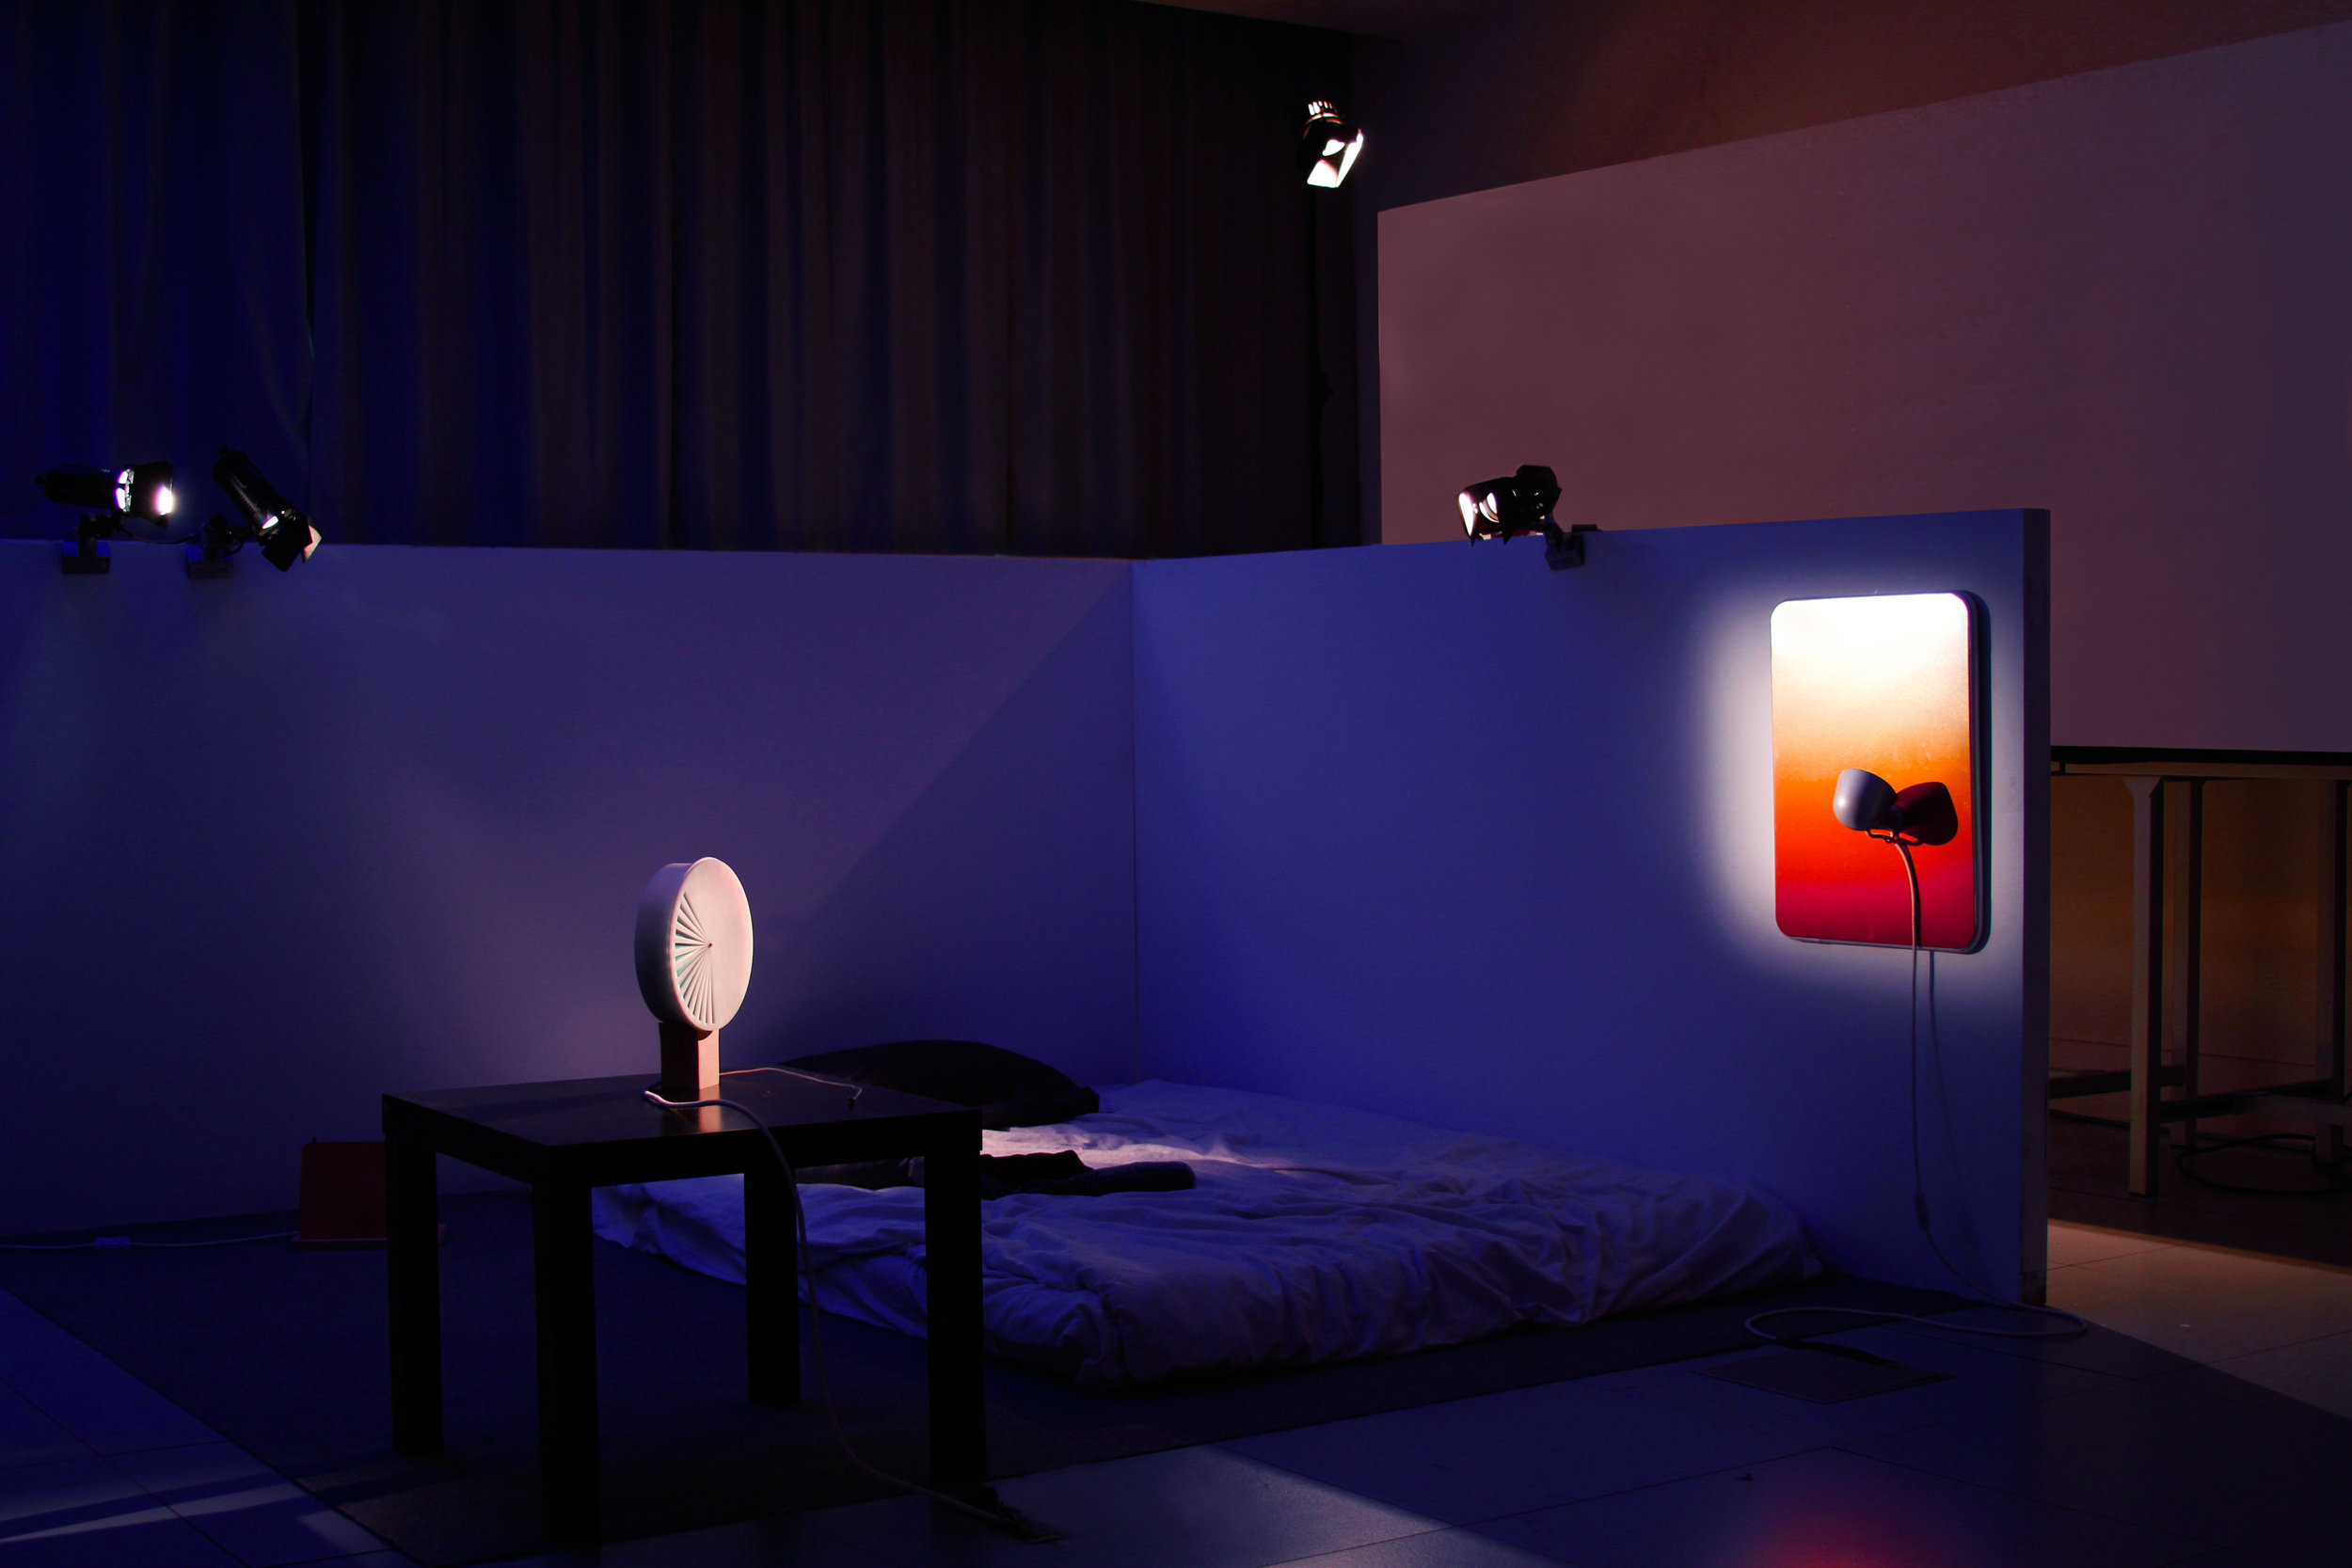 DESIGN    Edition of objects helping against sleep disorders. Following researches and specialists consultations, production of a speaker that changes the rythme of the music beat to slow down the heartbeat, and lightning devices that play with reflection and superposition to modulate the intensity of the light's color spectrum.    Photography credits: Leïla Arenou